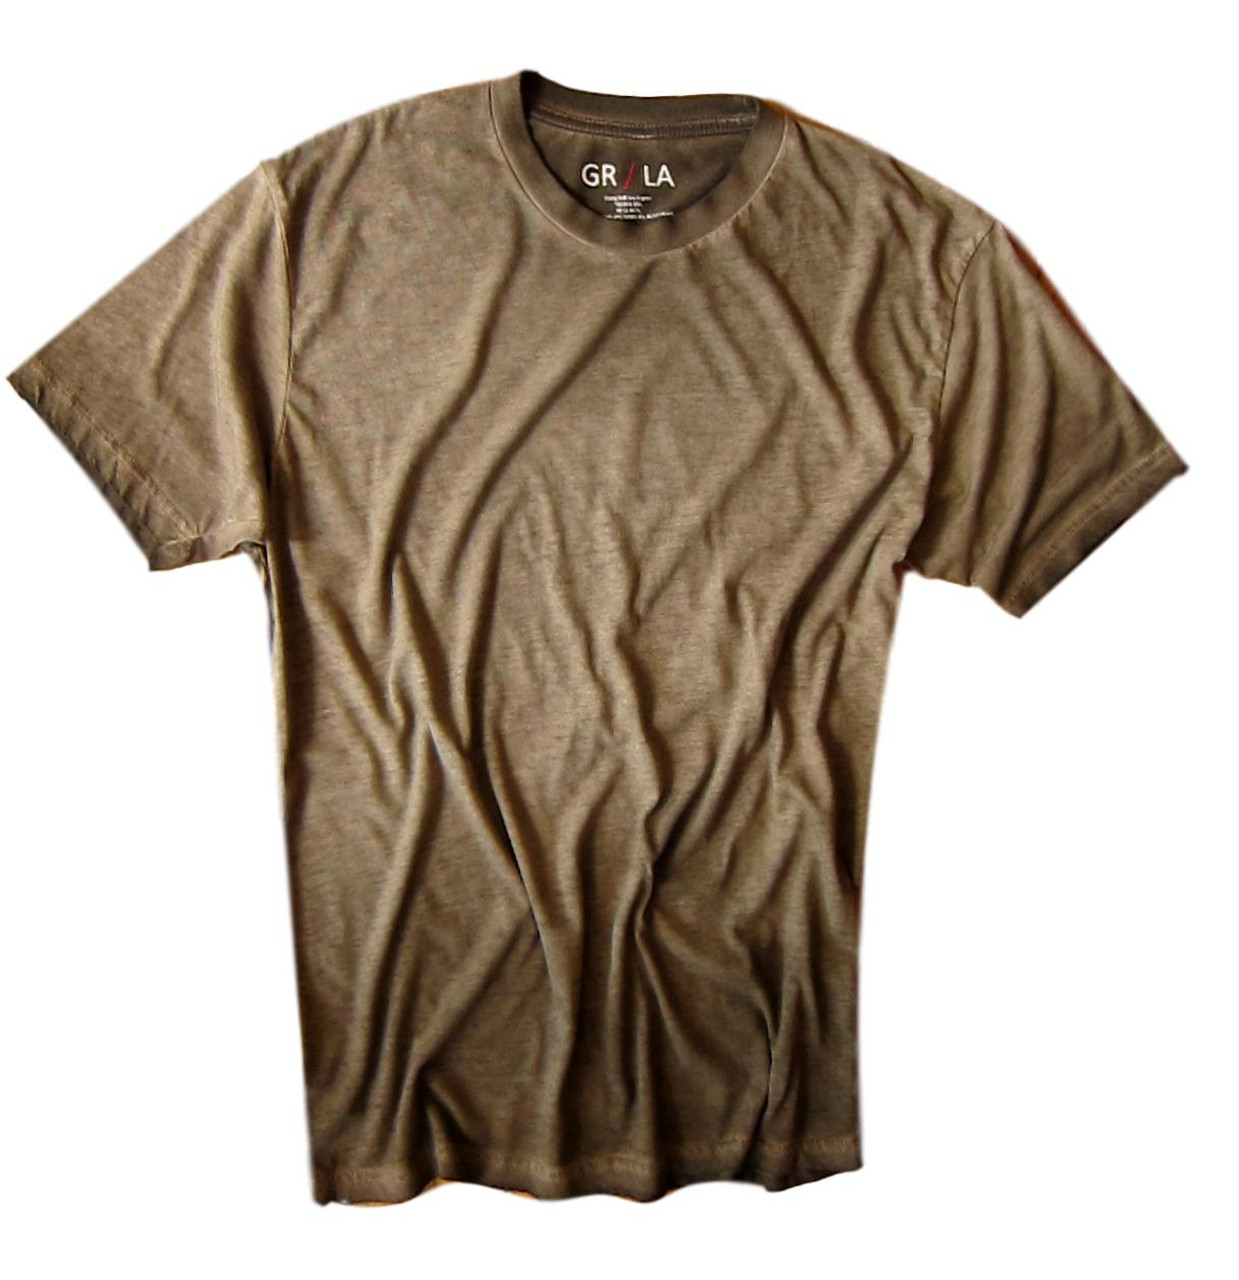 a065343b266d4 Men s Short Sleeves Crew T-Shirt Color Coffee   Garment Dyed 60% Cotton